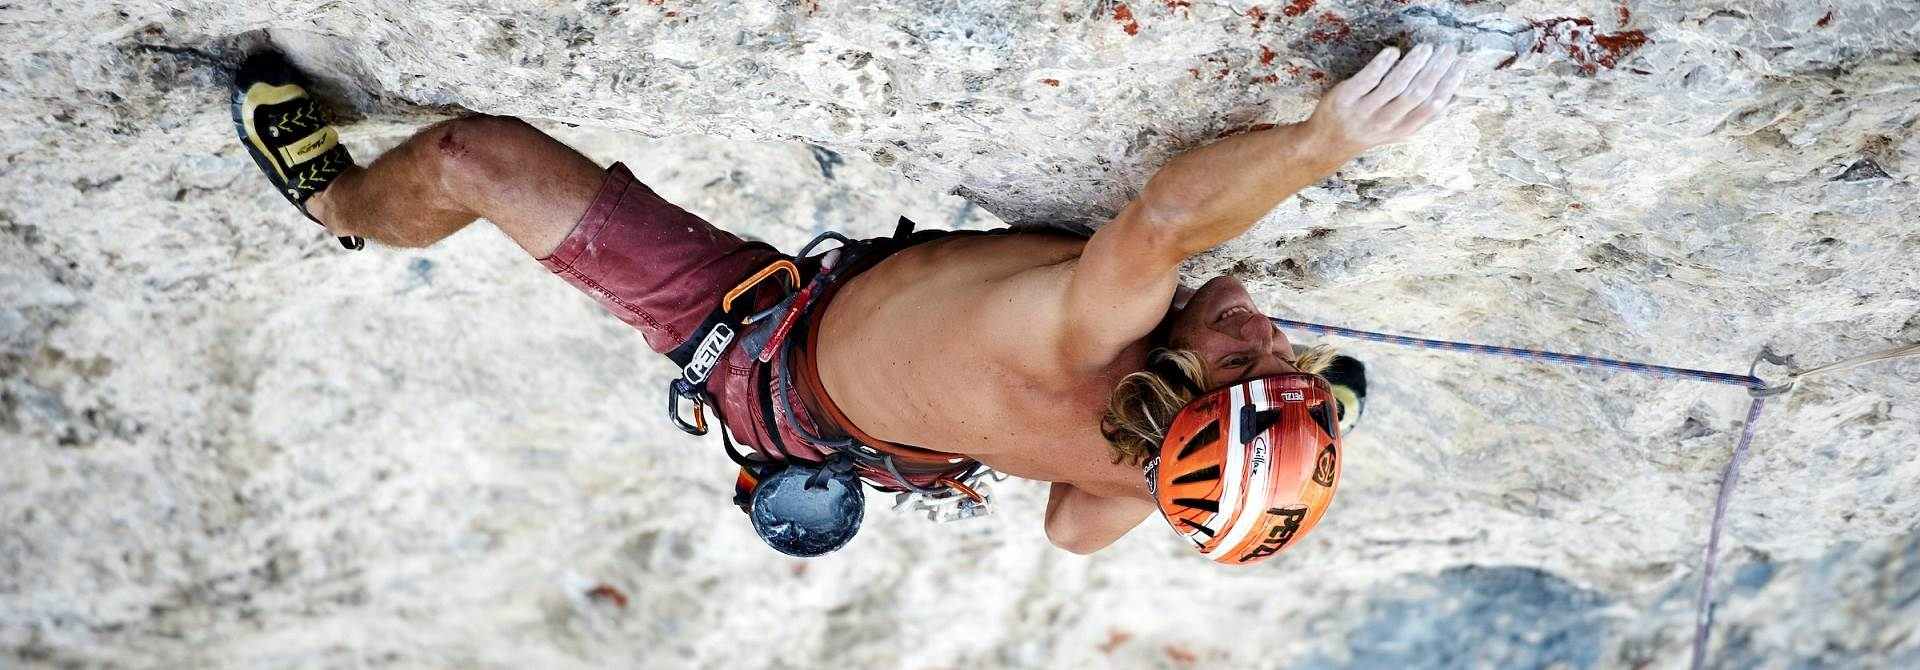 Climbers climb in rock face